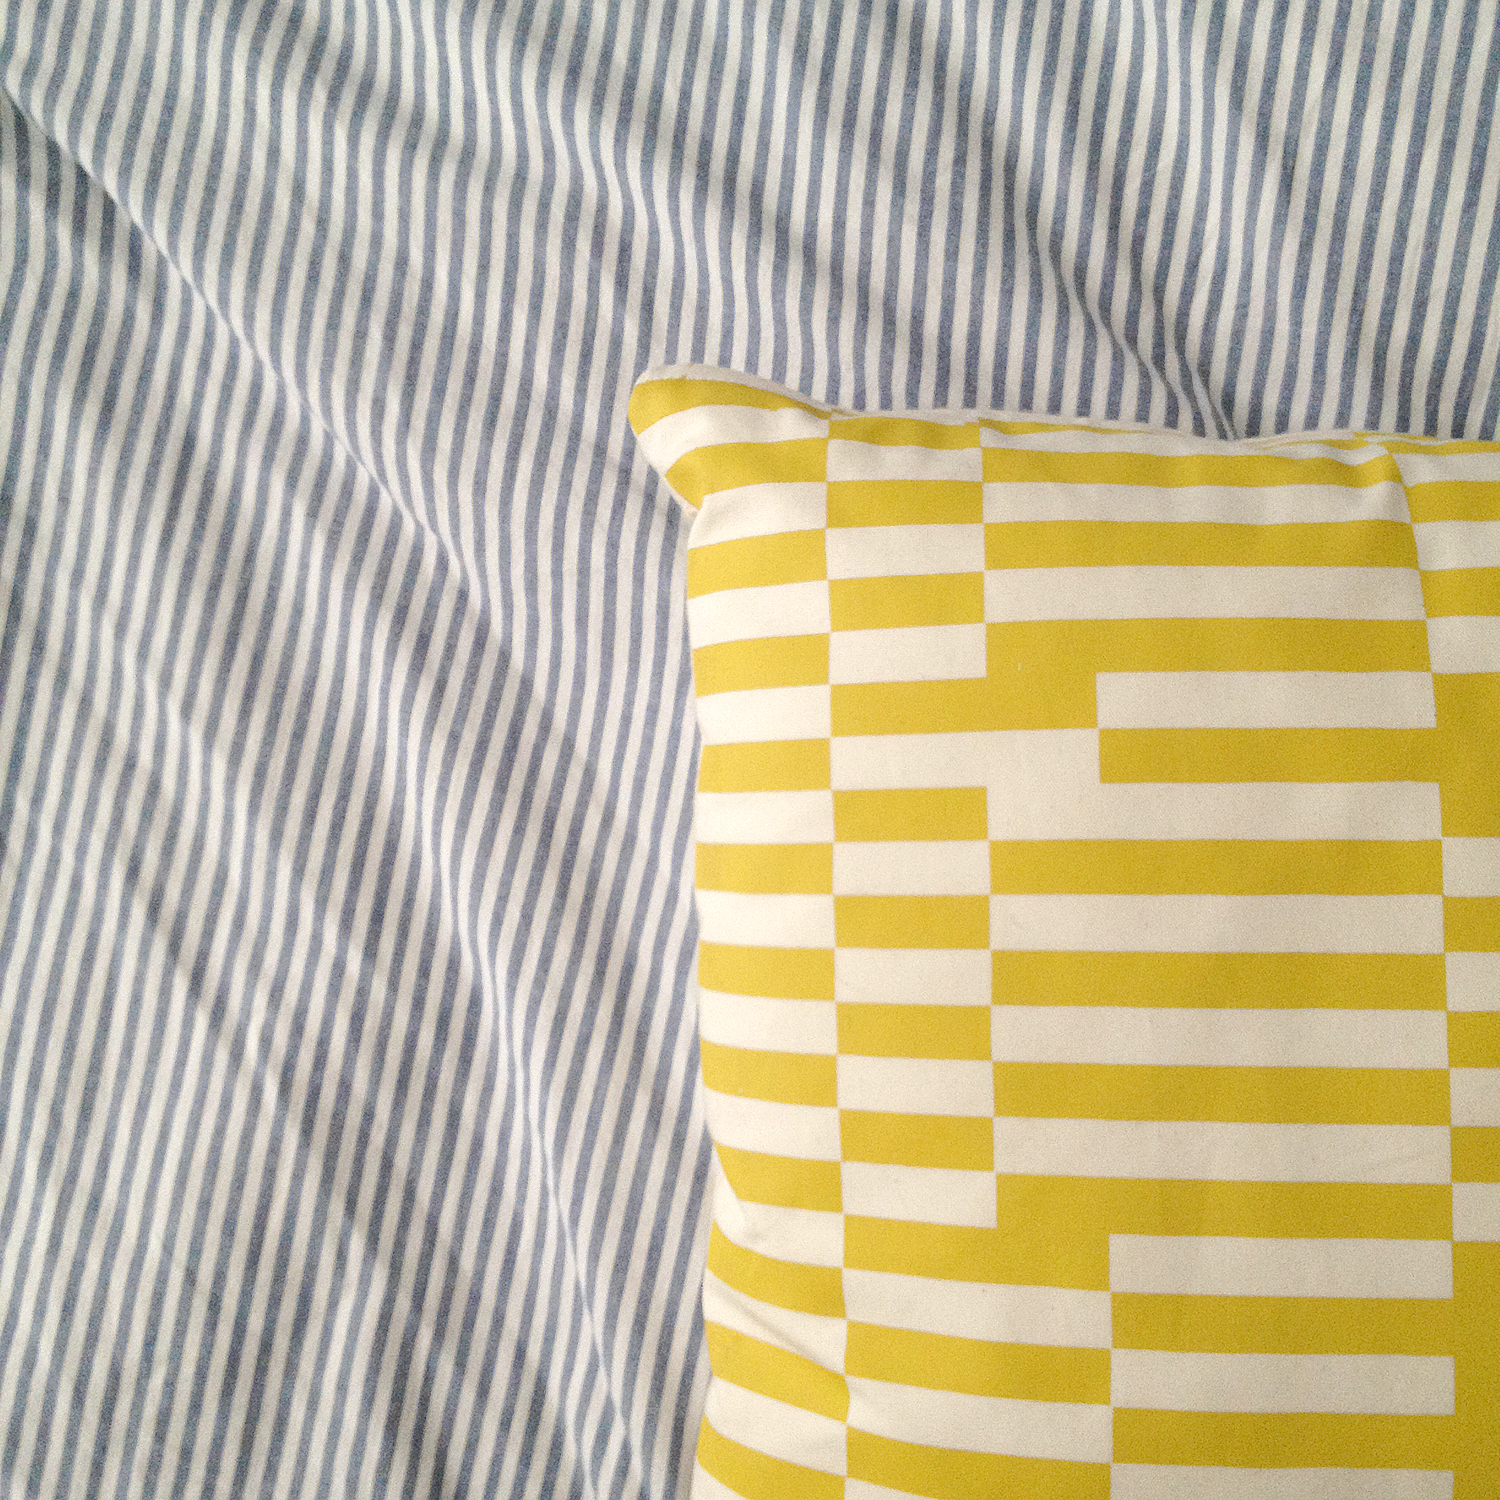 machine made duvet cover and handmade silkscreened pillow by  AU RETOUR , a company started by a grad school friend